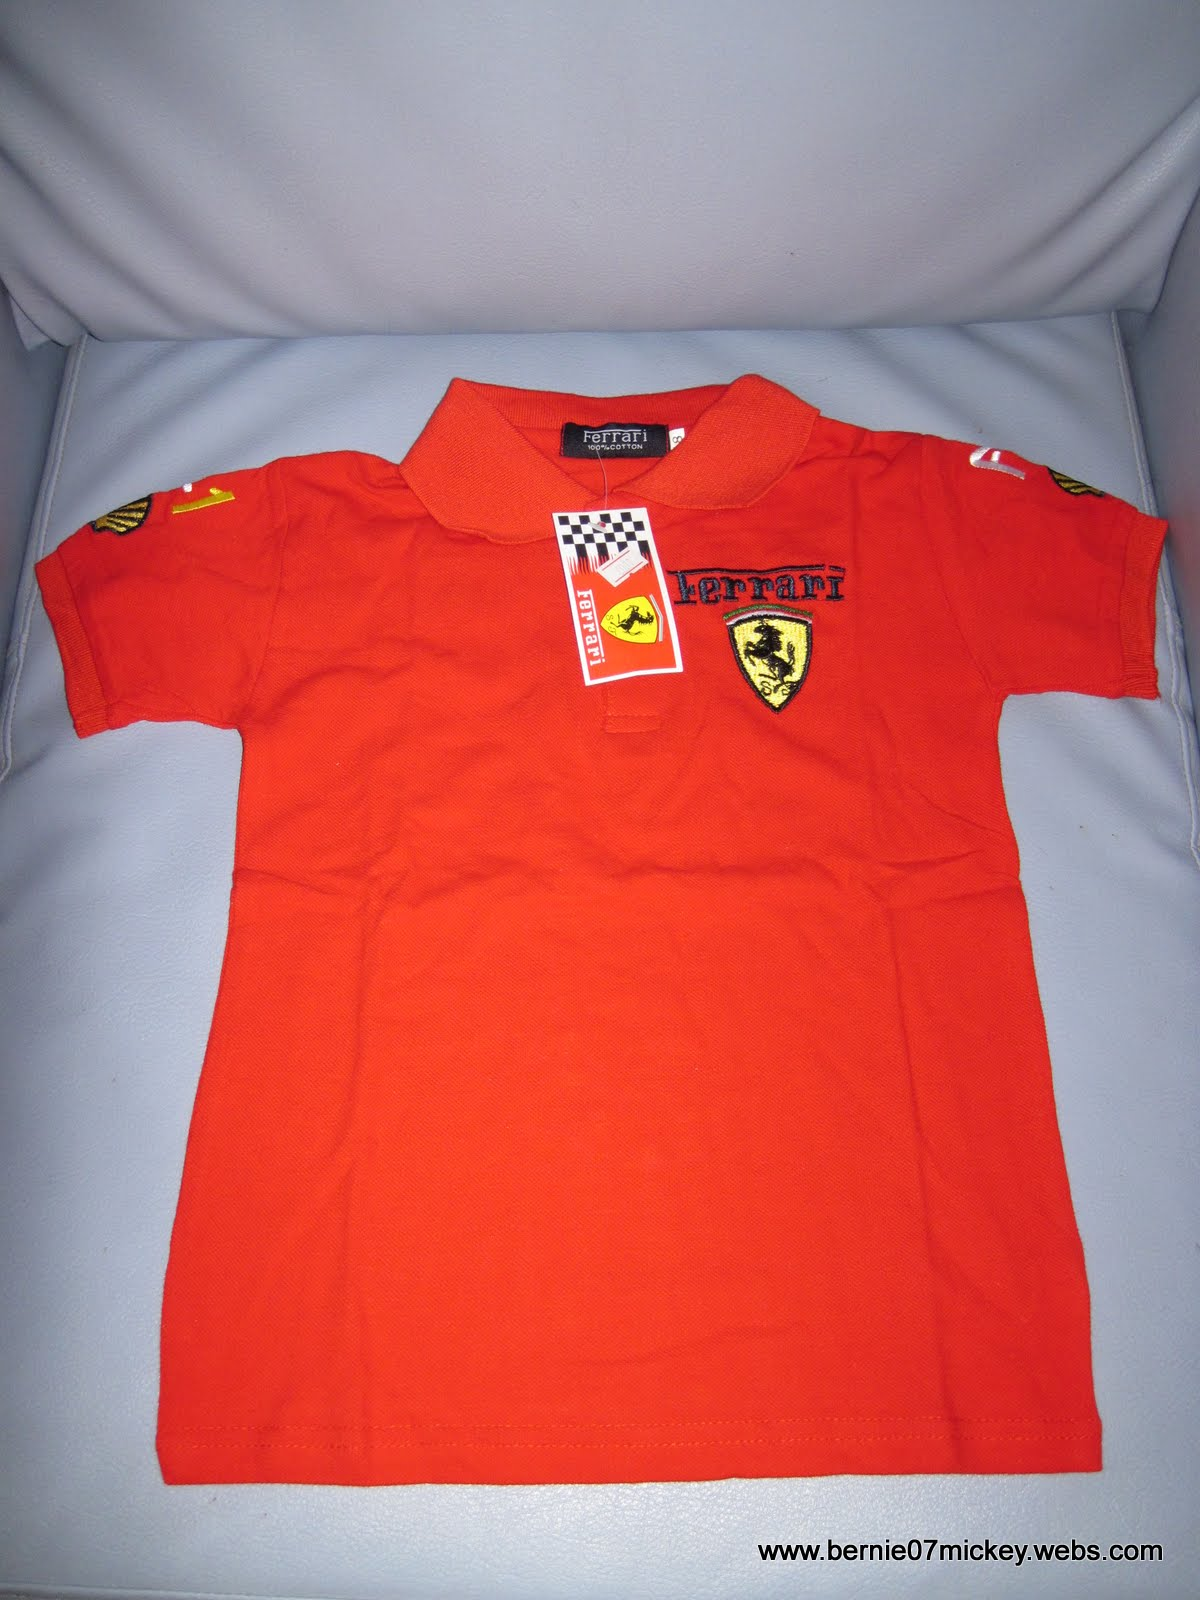 online off discount ferrari retykle to hong clothes shopping at kong m coat up baby kids products